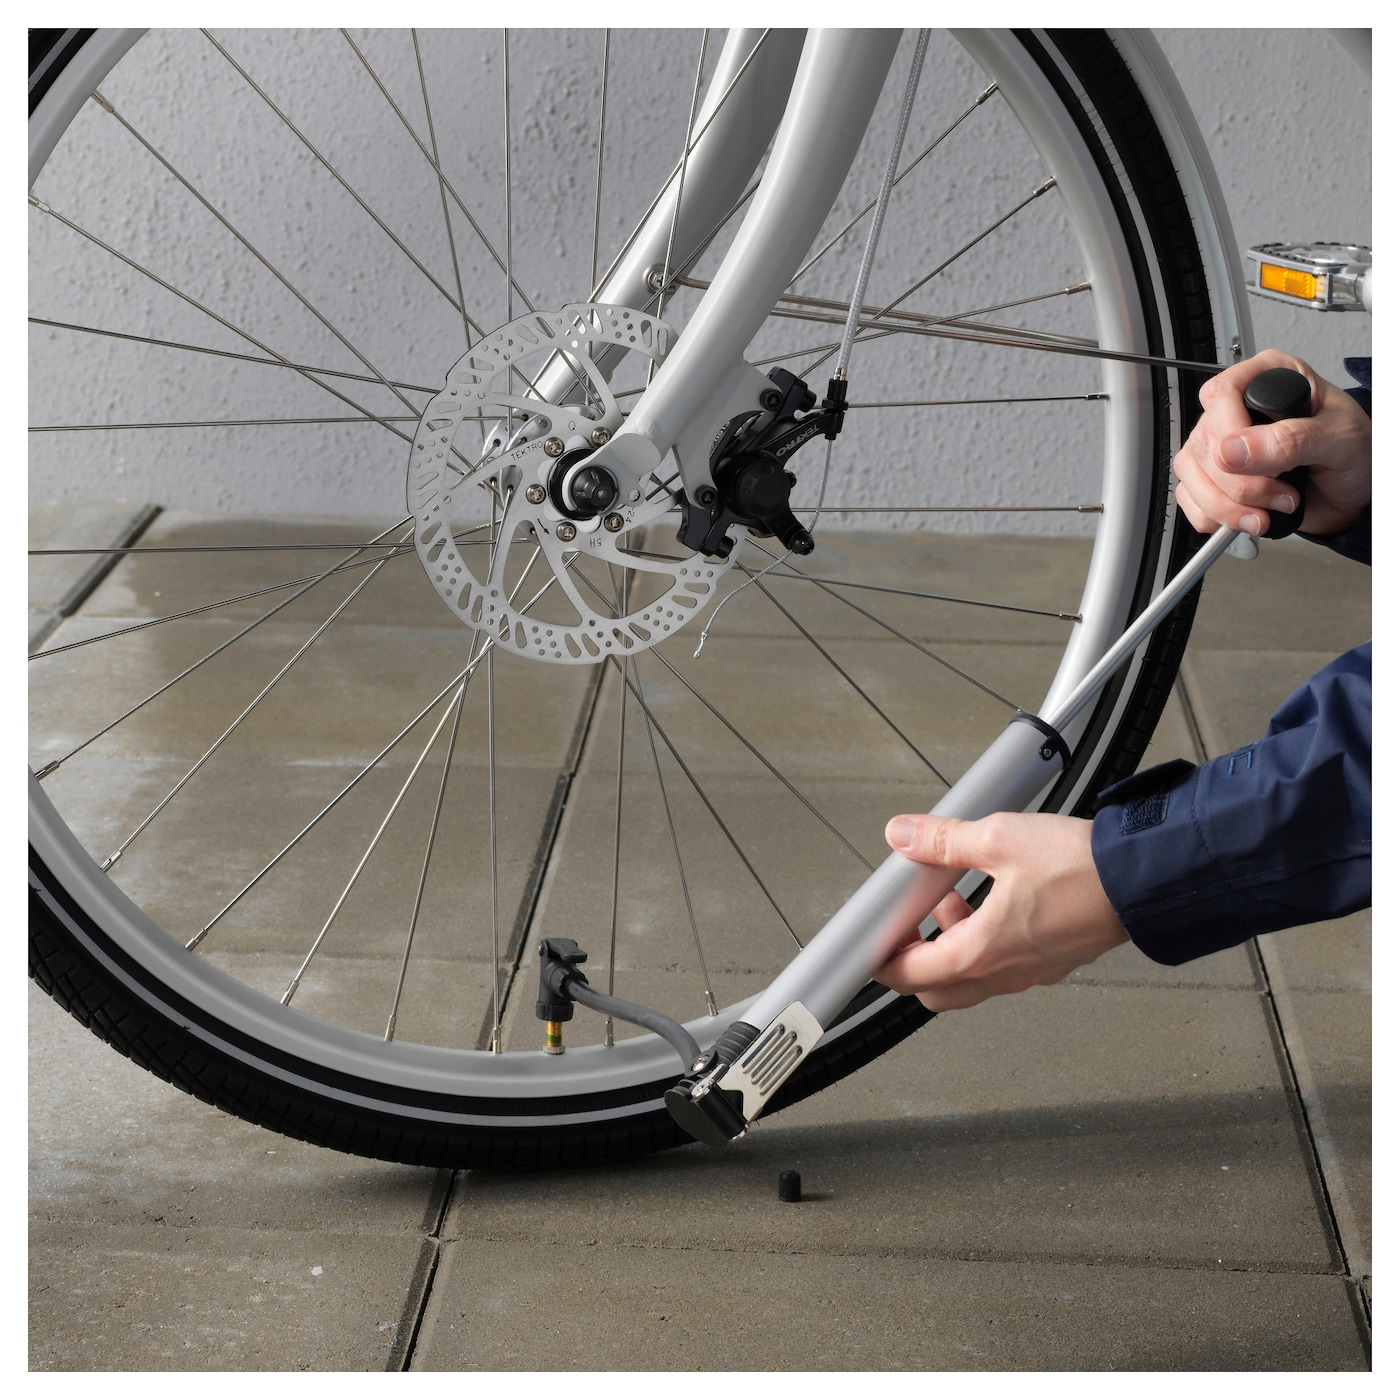 IKEA SLADDA bicycle pump Can be used as both a hand pump and a foot pump.